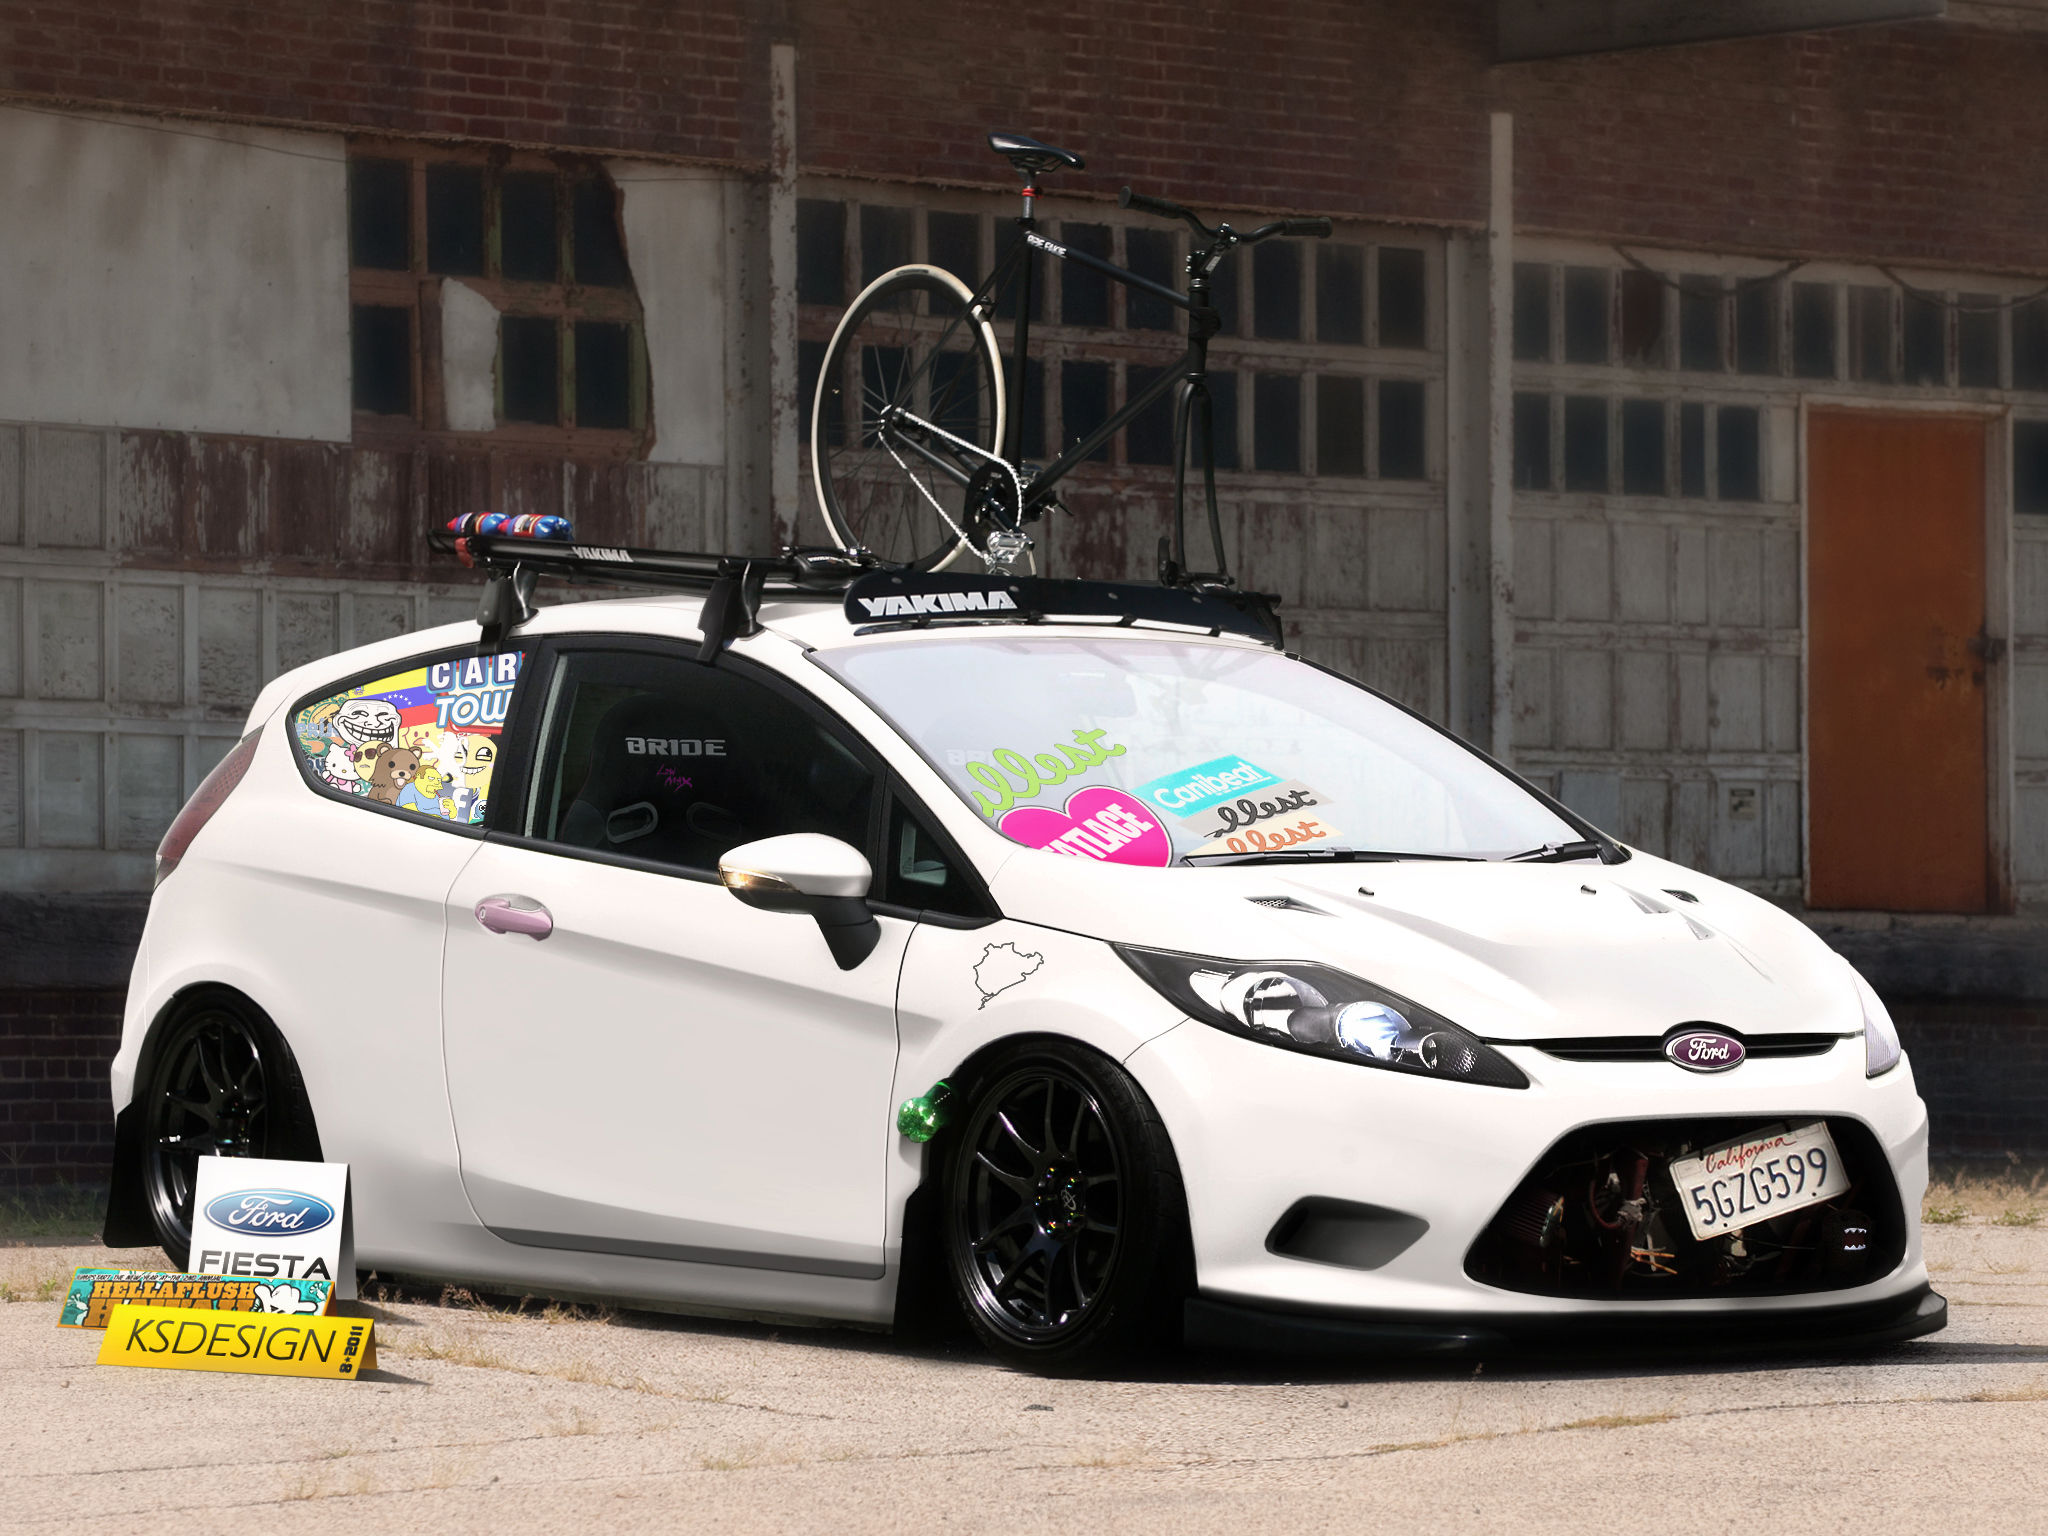 Ford_Fiesta_Hellaflush_by_Ksdesign